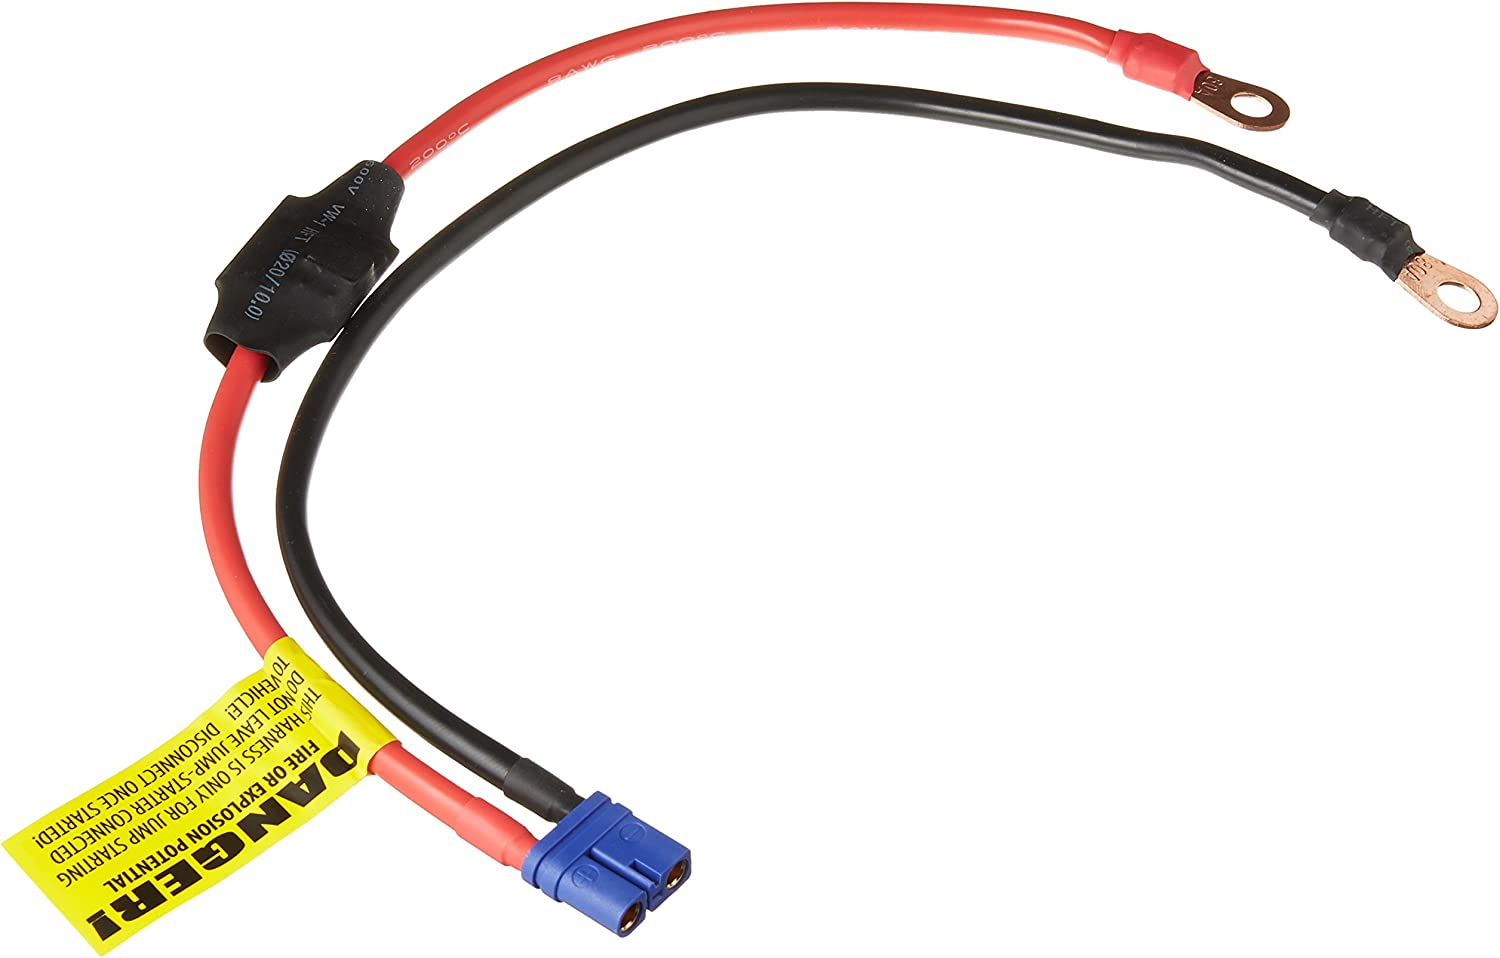 Antigravity Batteries Clampless Jump Starting Harness XP-5 /& SPORT Built in Protection XP-3 Works with ORIGINAL Micro-Start XP-1 DOES NOT WORK ON NEWER XP-1 /& XP-3 No need for Jumper Cables